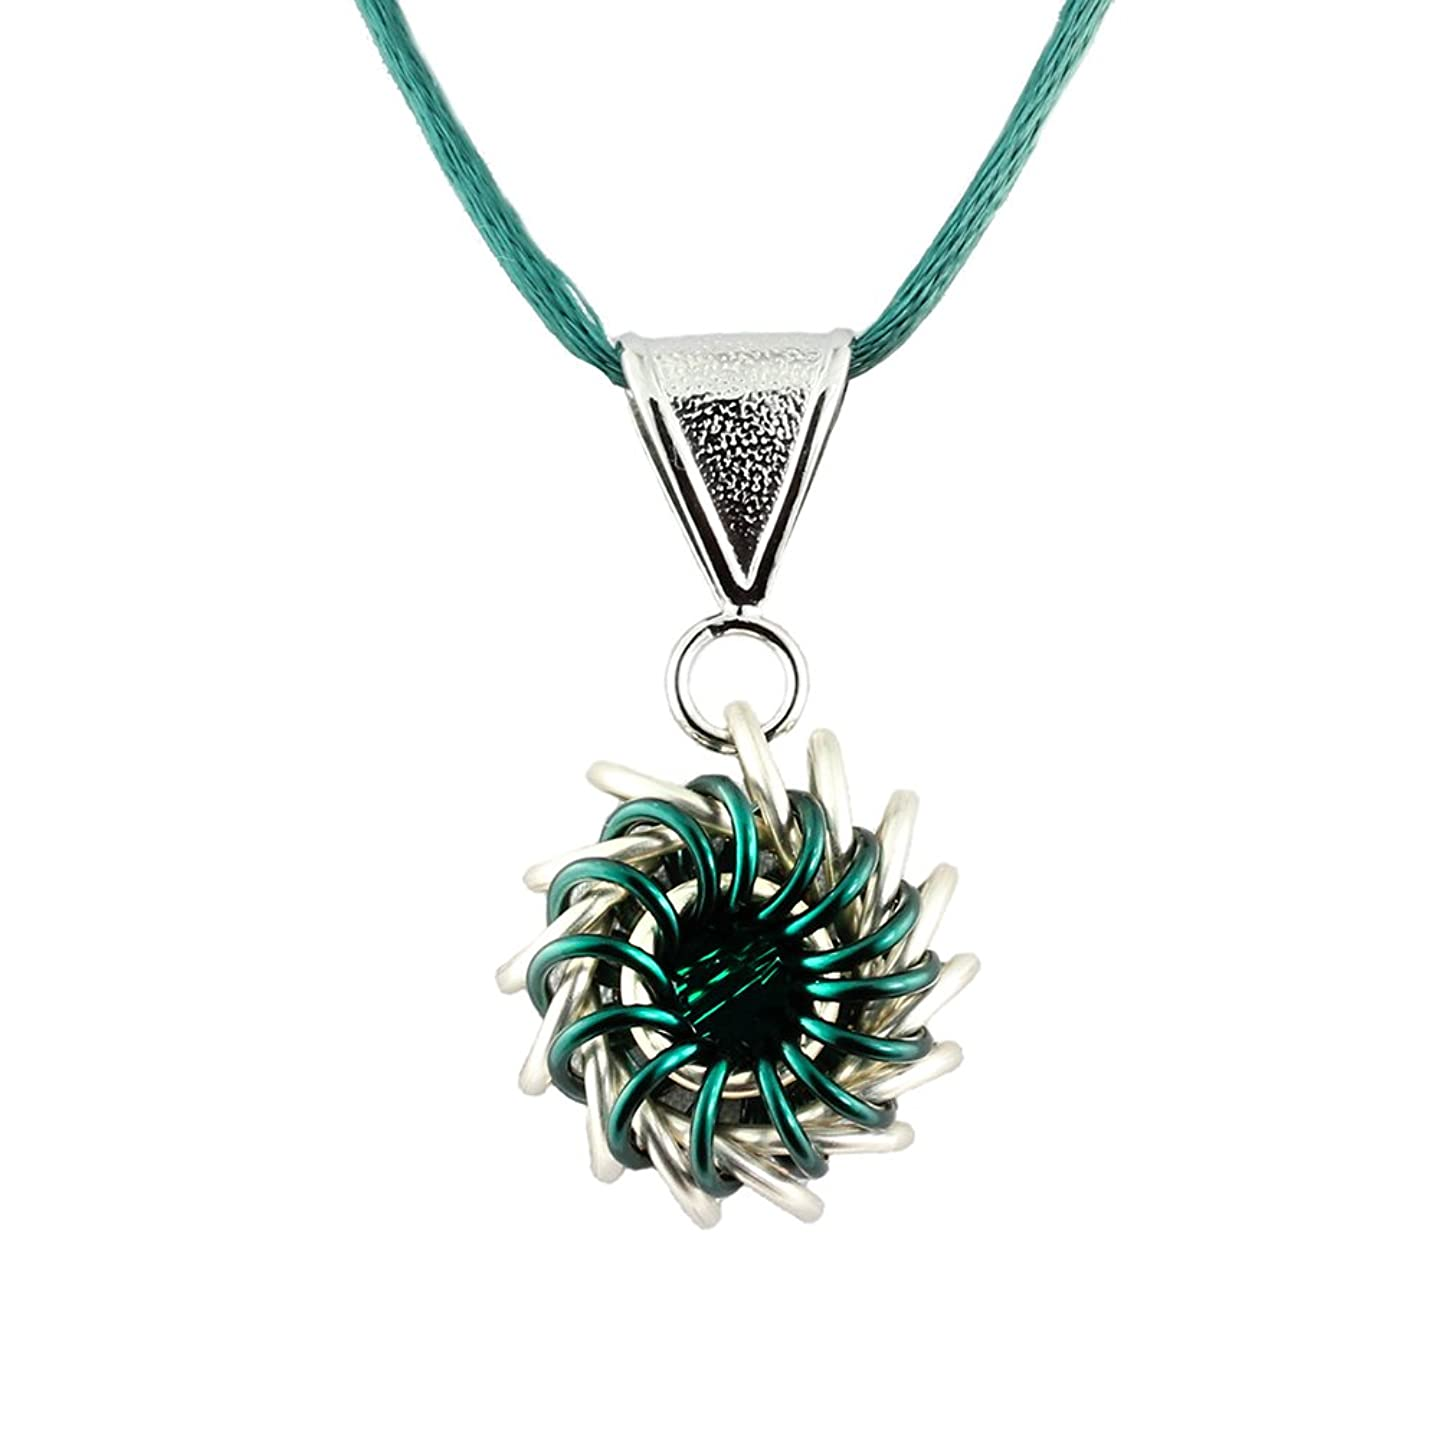 Weave Got Maille Teal Whirlybird Chain Maille Necklace Kit with Swarovski Crystal,